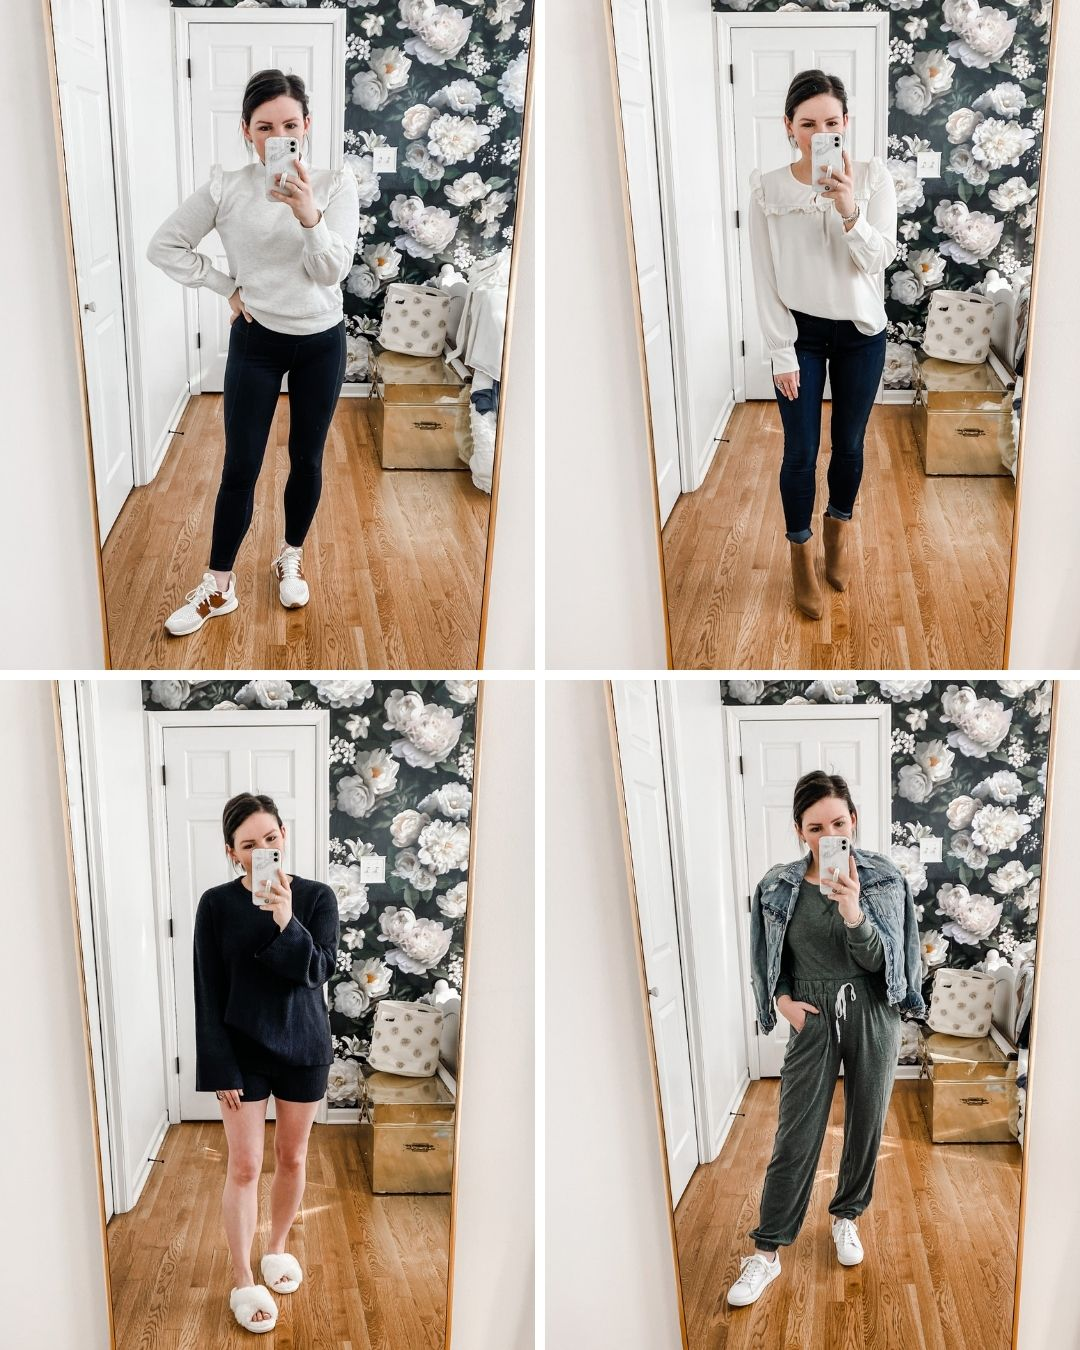 Amazon Fashion Finds on 2 Body Types